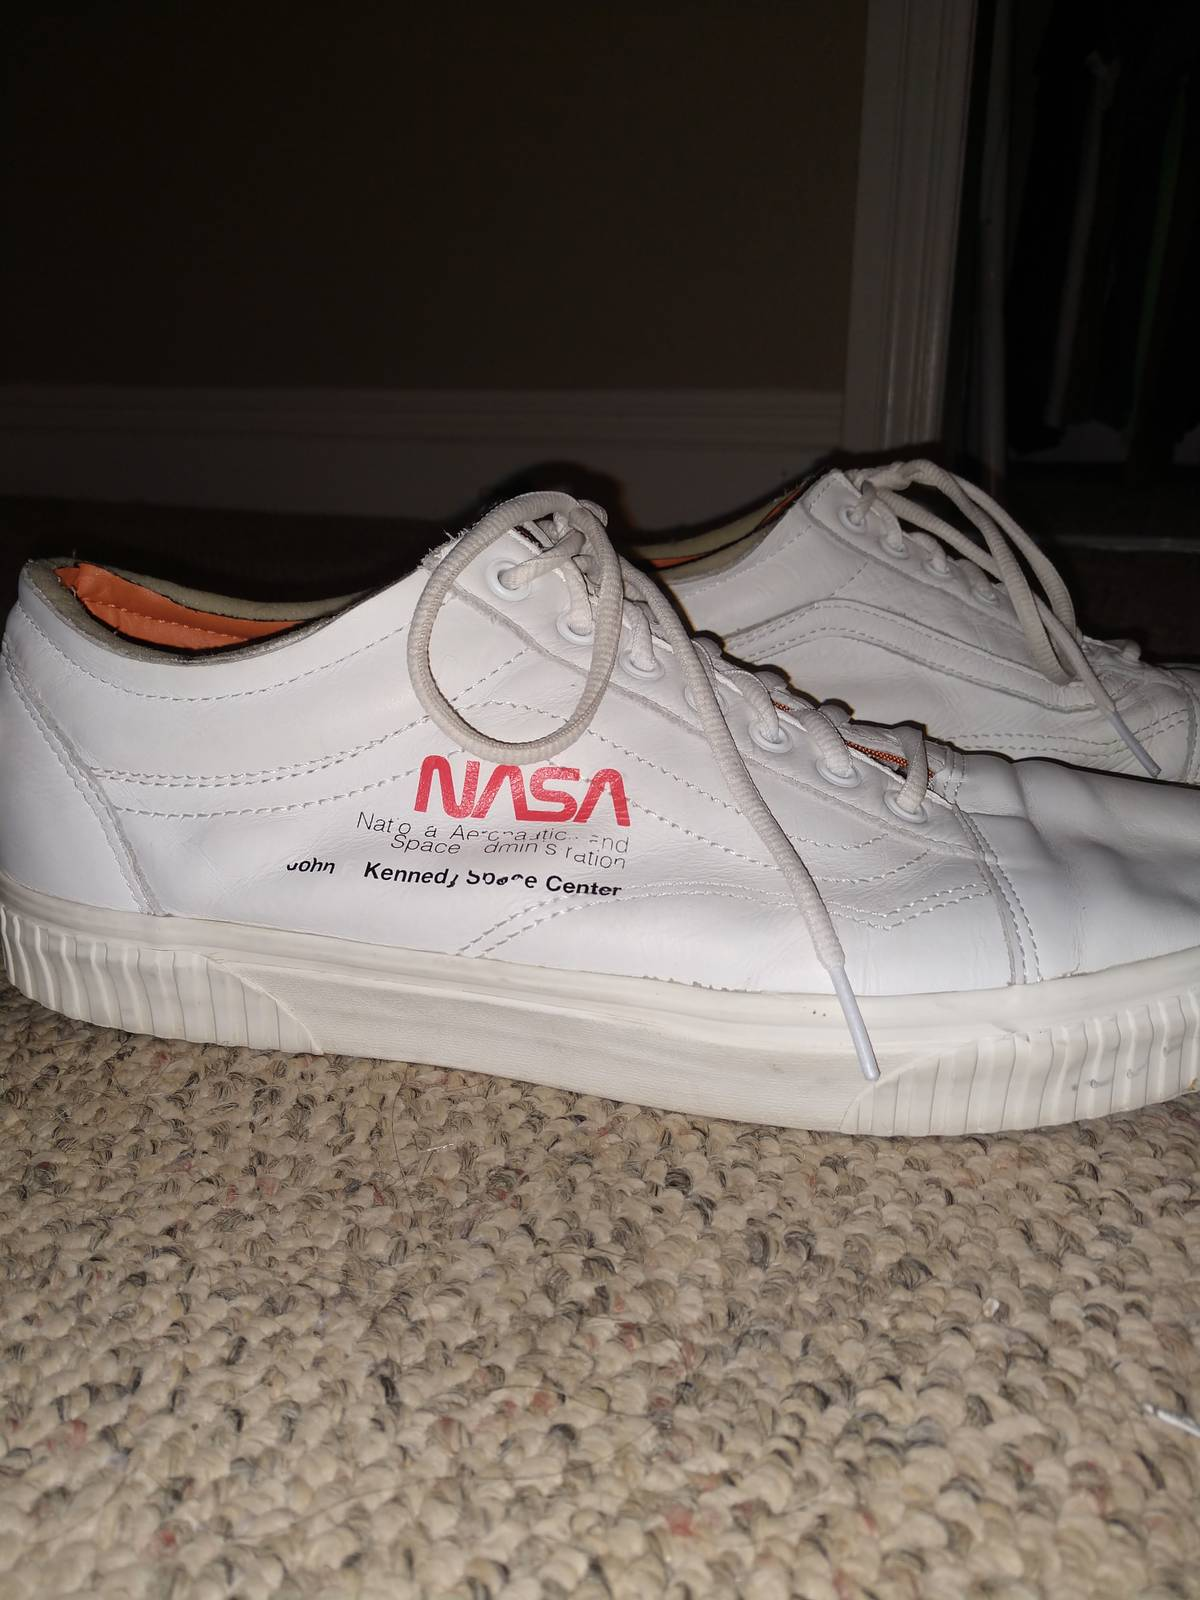 Vans NASA x Vans collab shoes Size 13 - Low-Top Sneakers for Sale - Grailed 436948b5a